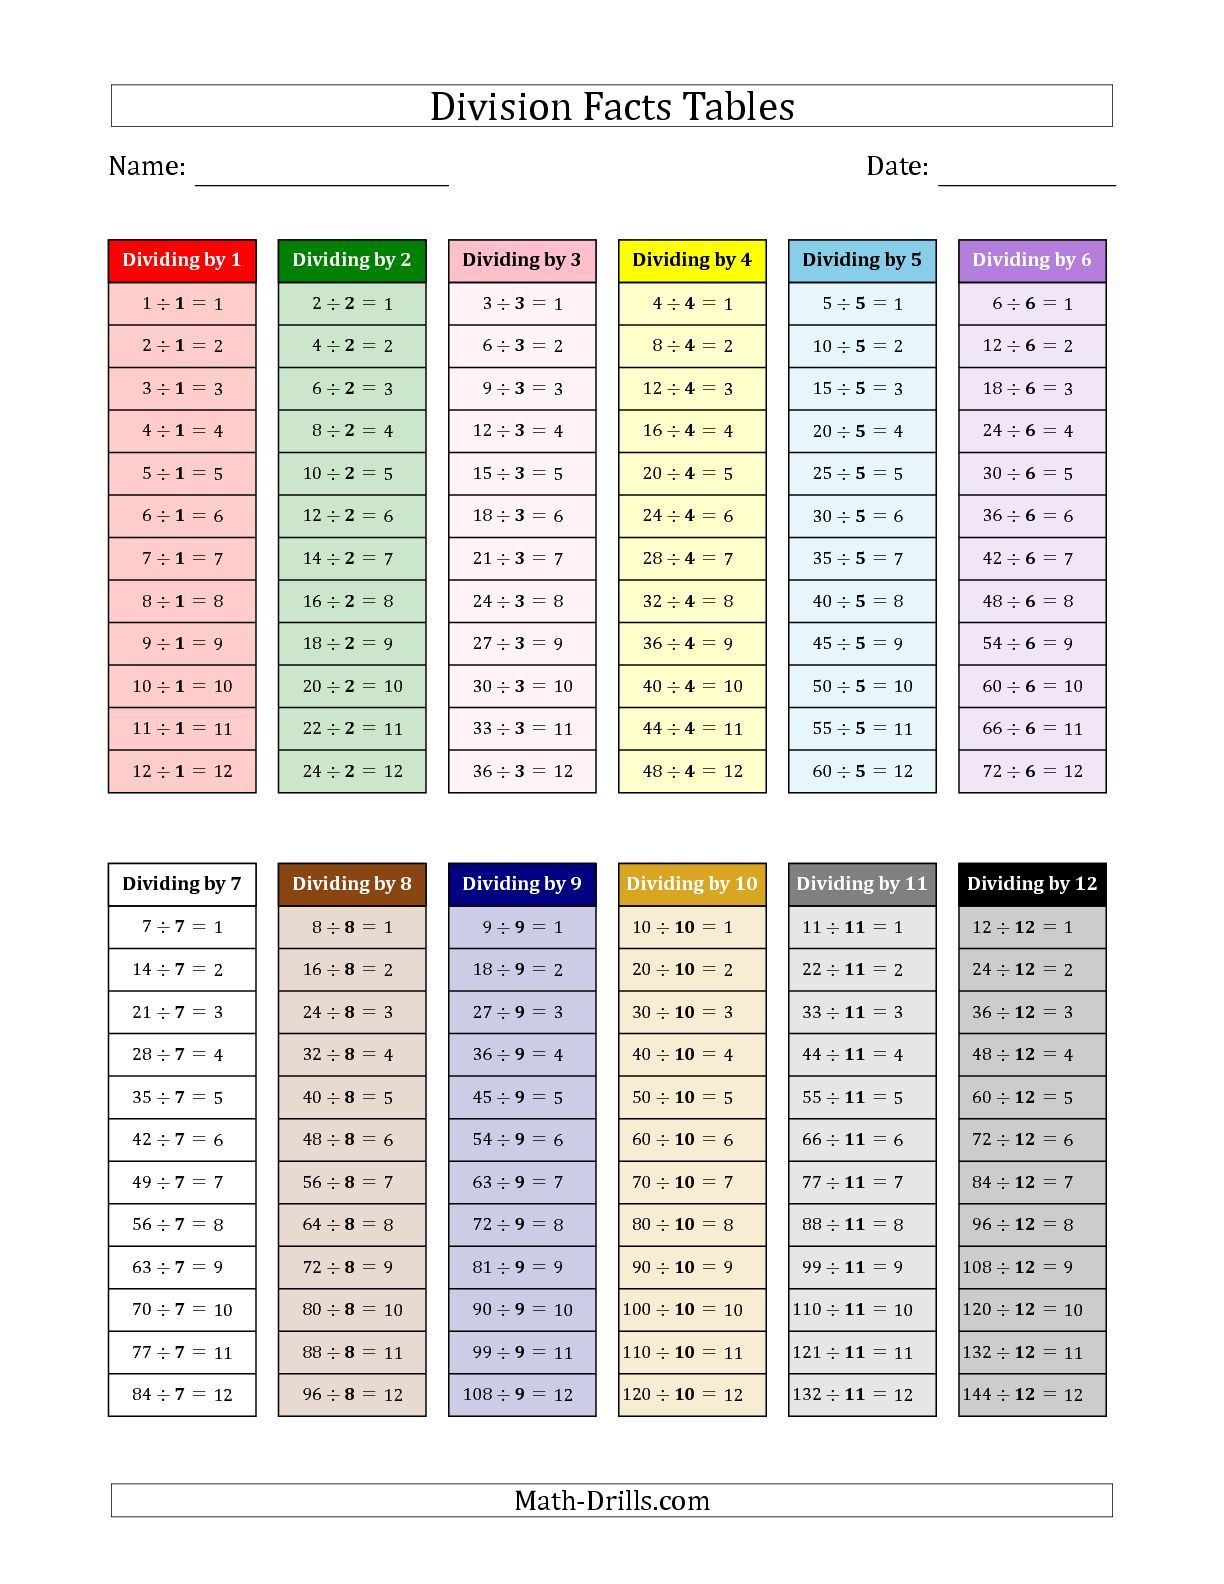 worksheet Division Facts 1-12 the division facts tables in montessori colors 1 to 12 math worksheet from worksheet